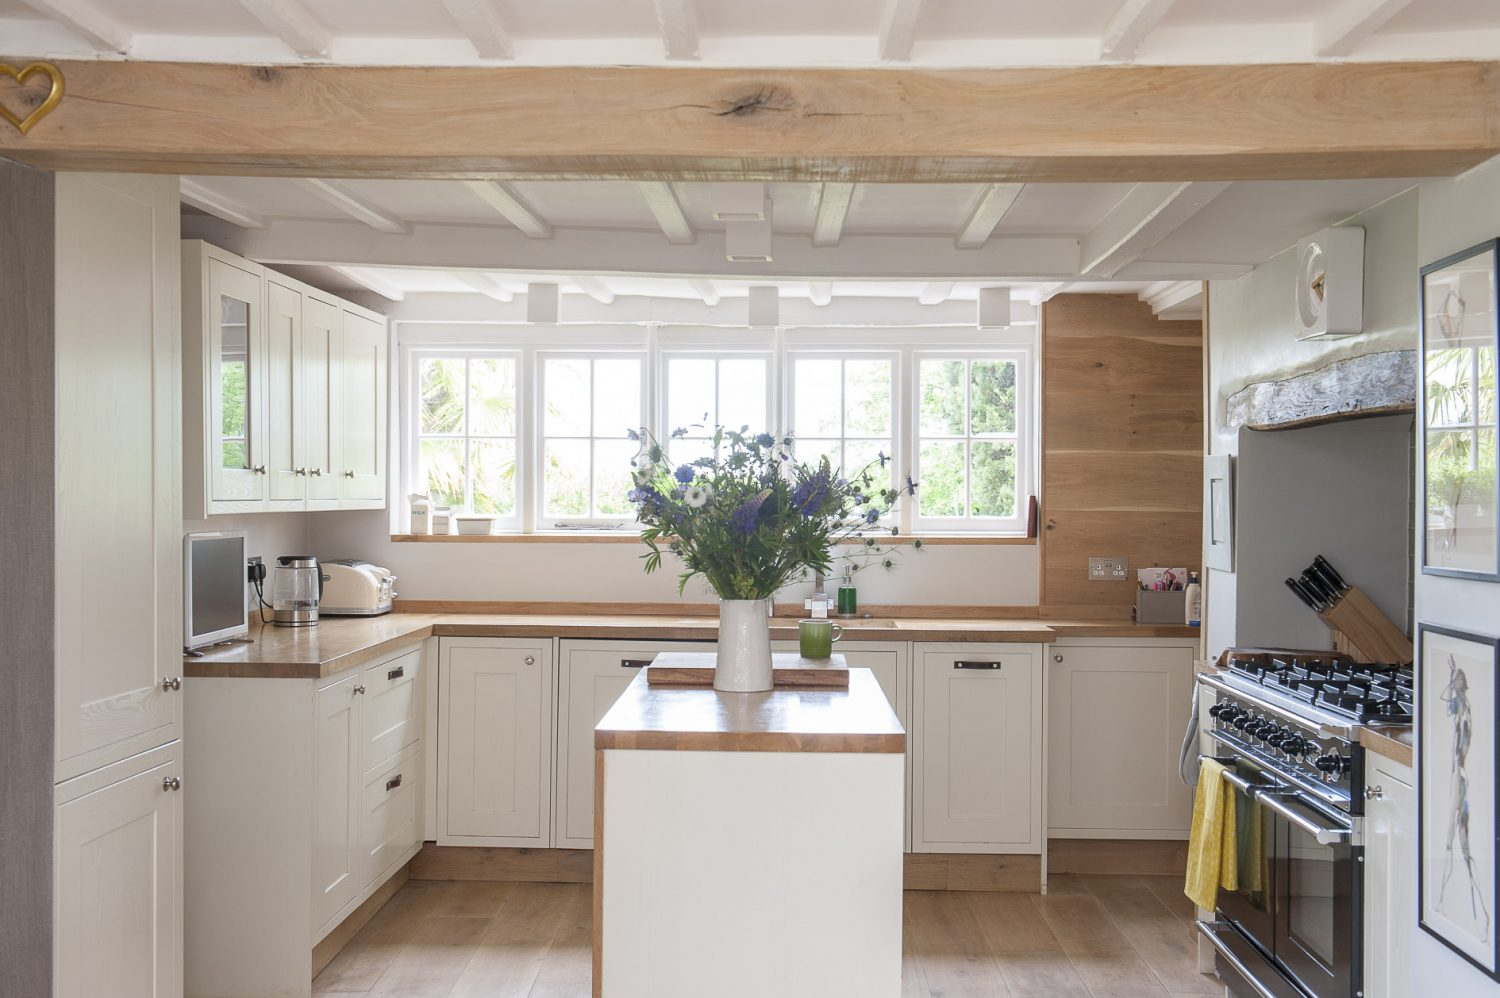 Cream-painted units and pale oak worksurfaces reflect the light